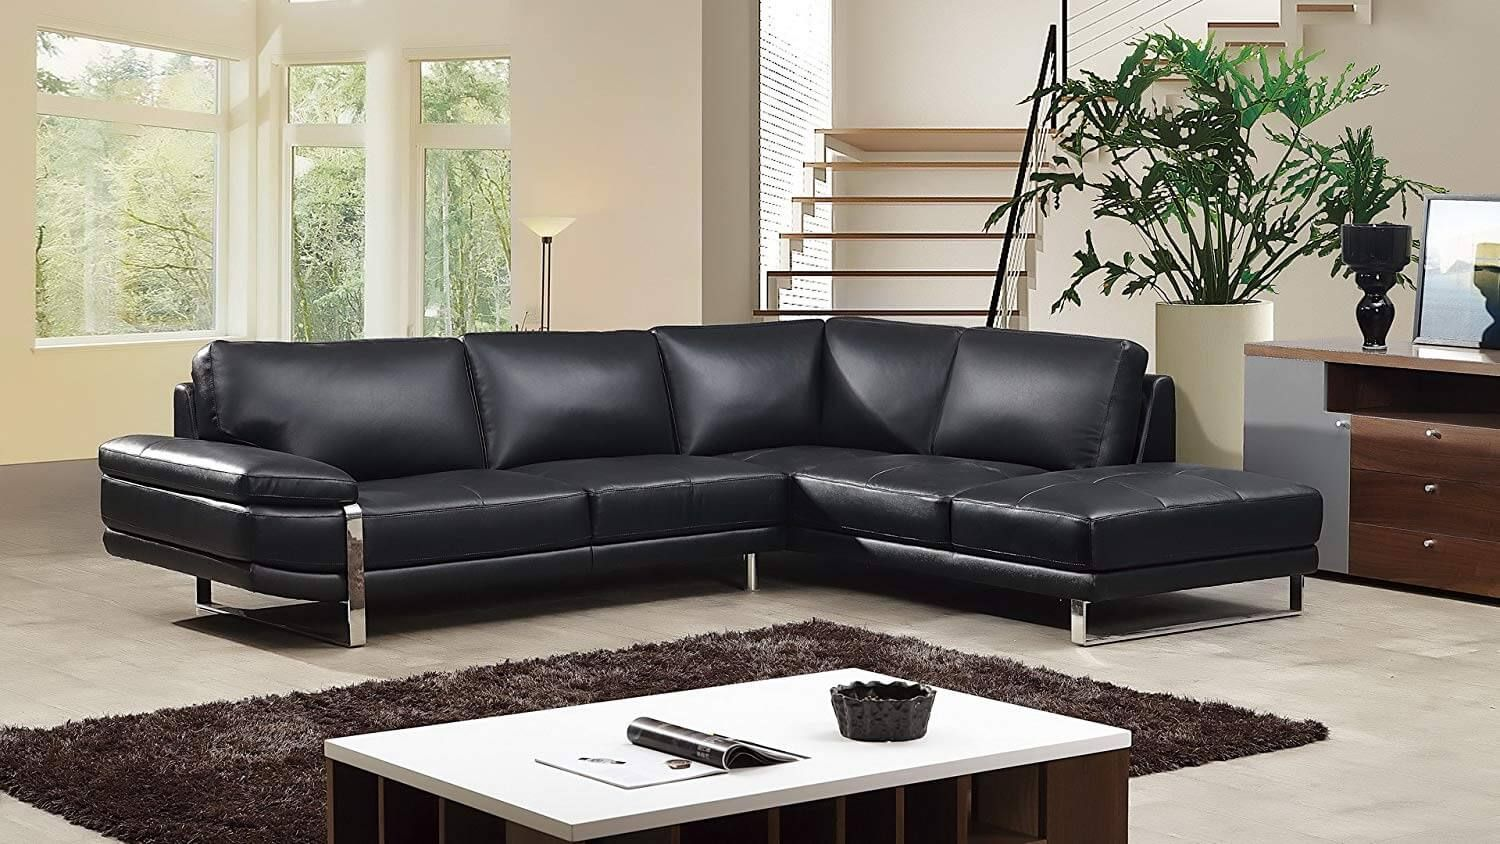 Wondrous Embrace Your Home With Best Leather Sofa Brands In 2019 Spiritservingveterans Wood Chair Design Ideas Spiritservingveteransorg